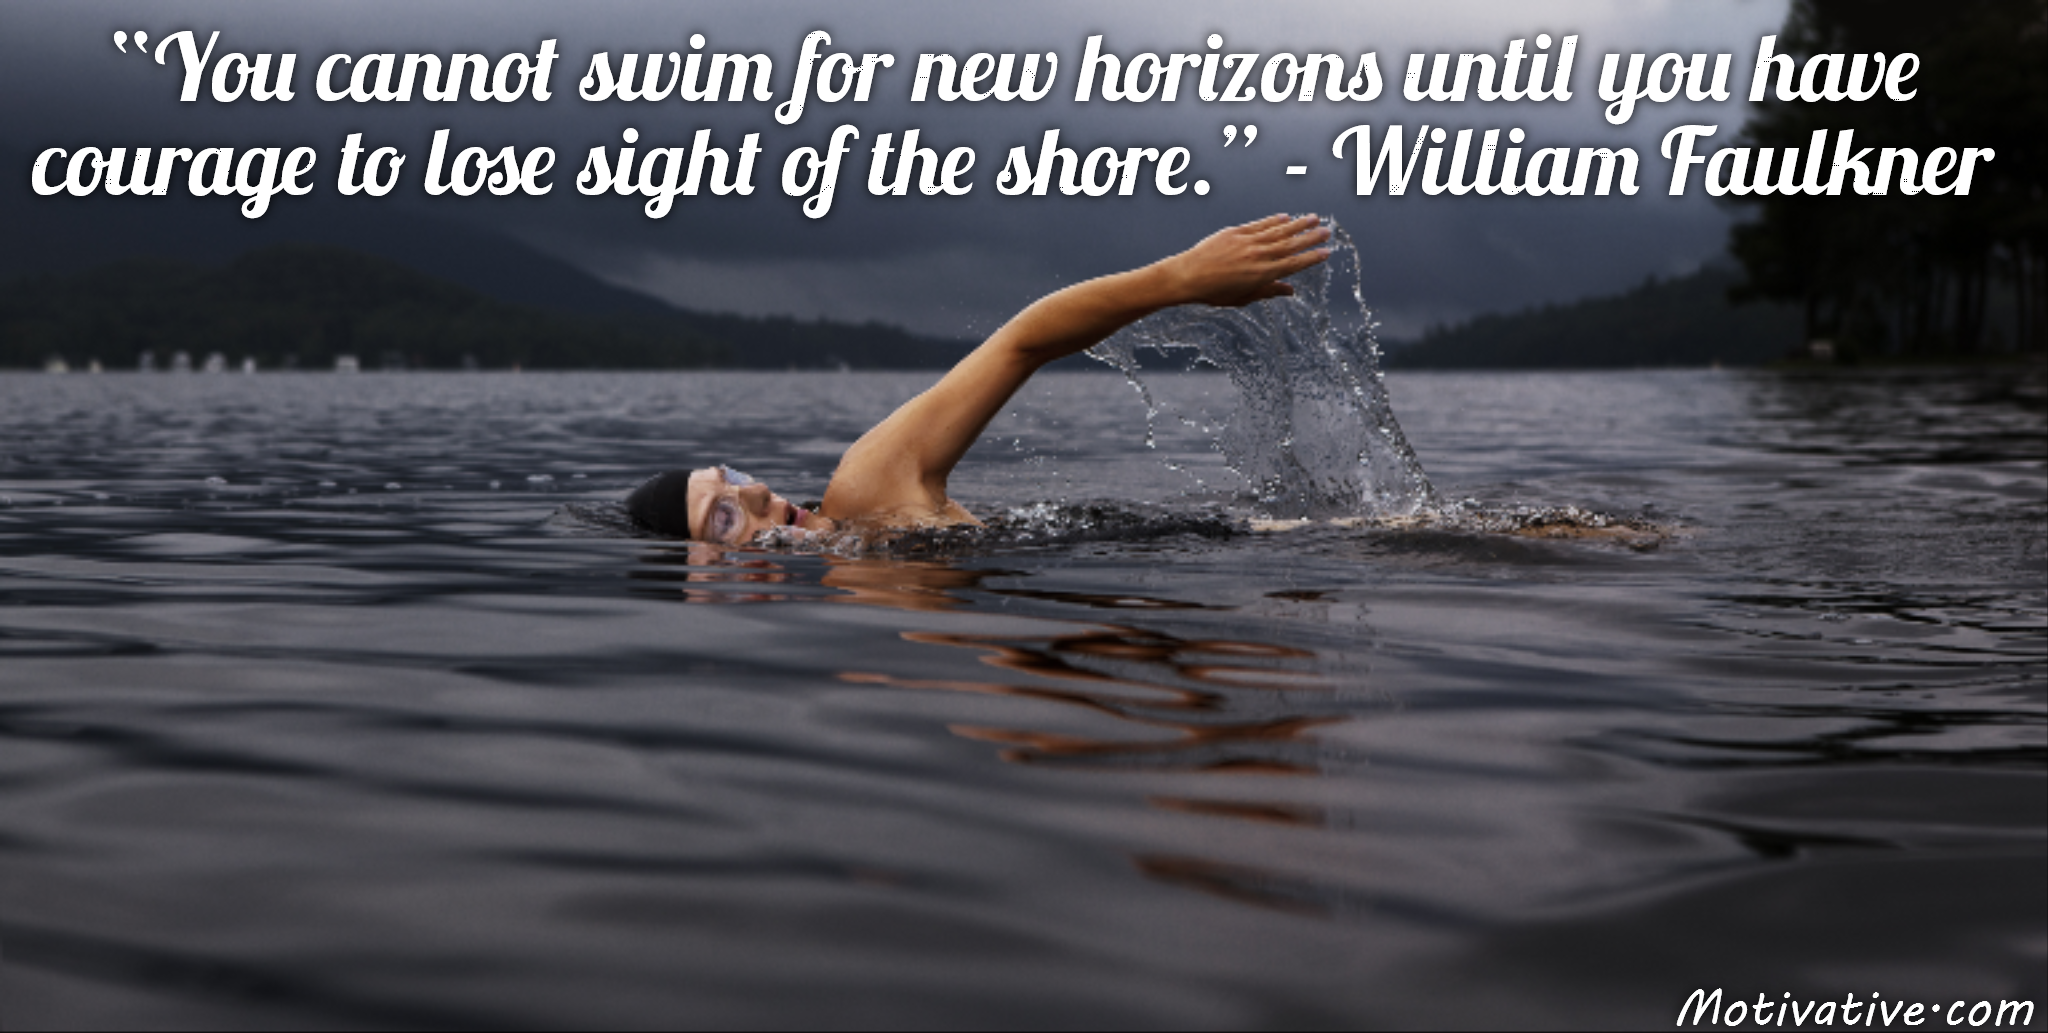 You cannot swim for new horizons until you have courage to lose sight of the shore. – William Faulkner